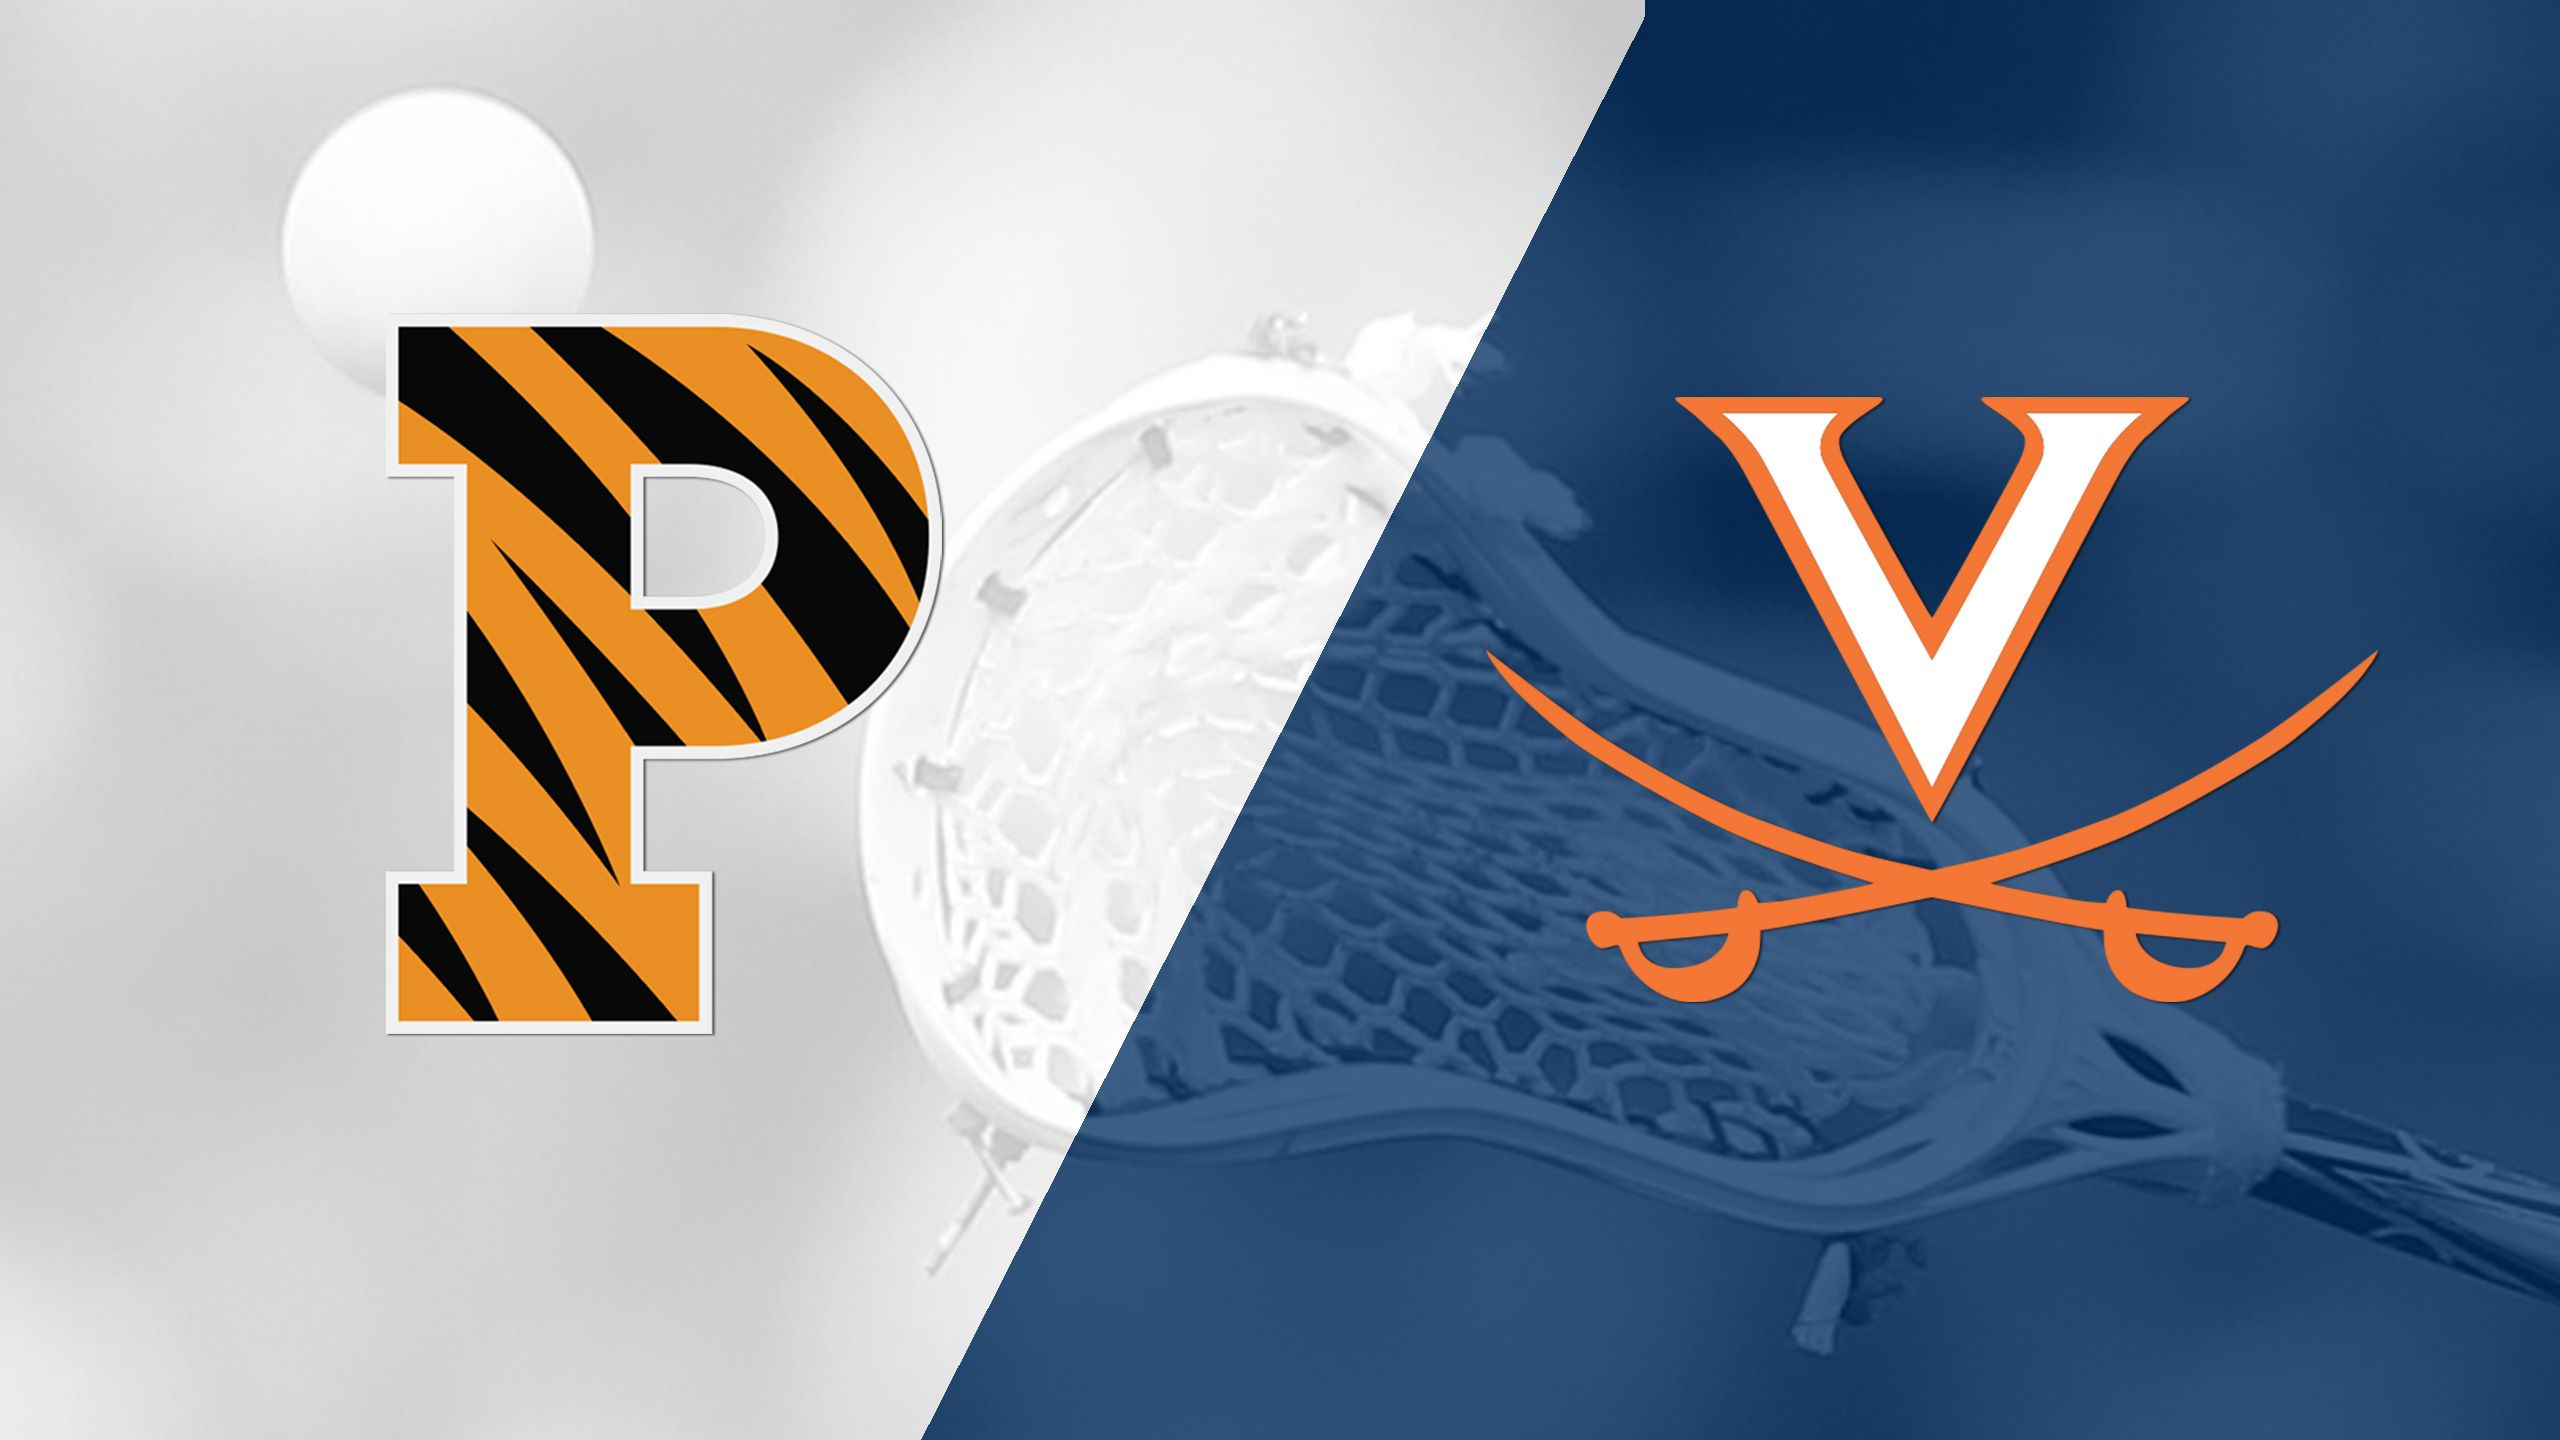 #18 Princeton vs. #6 Virginia (M Lacrosse)